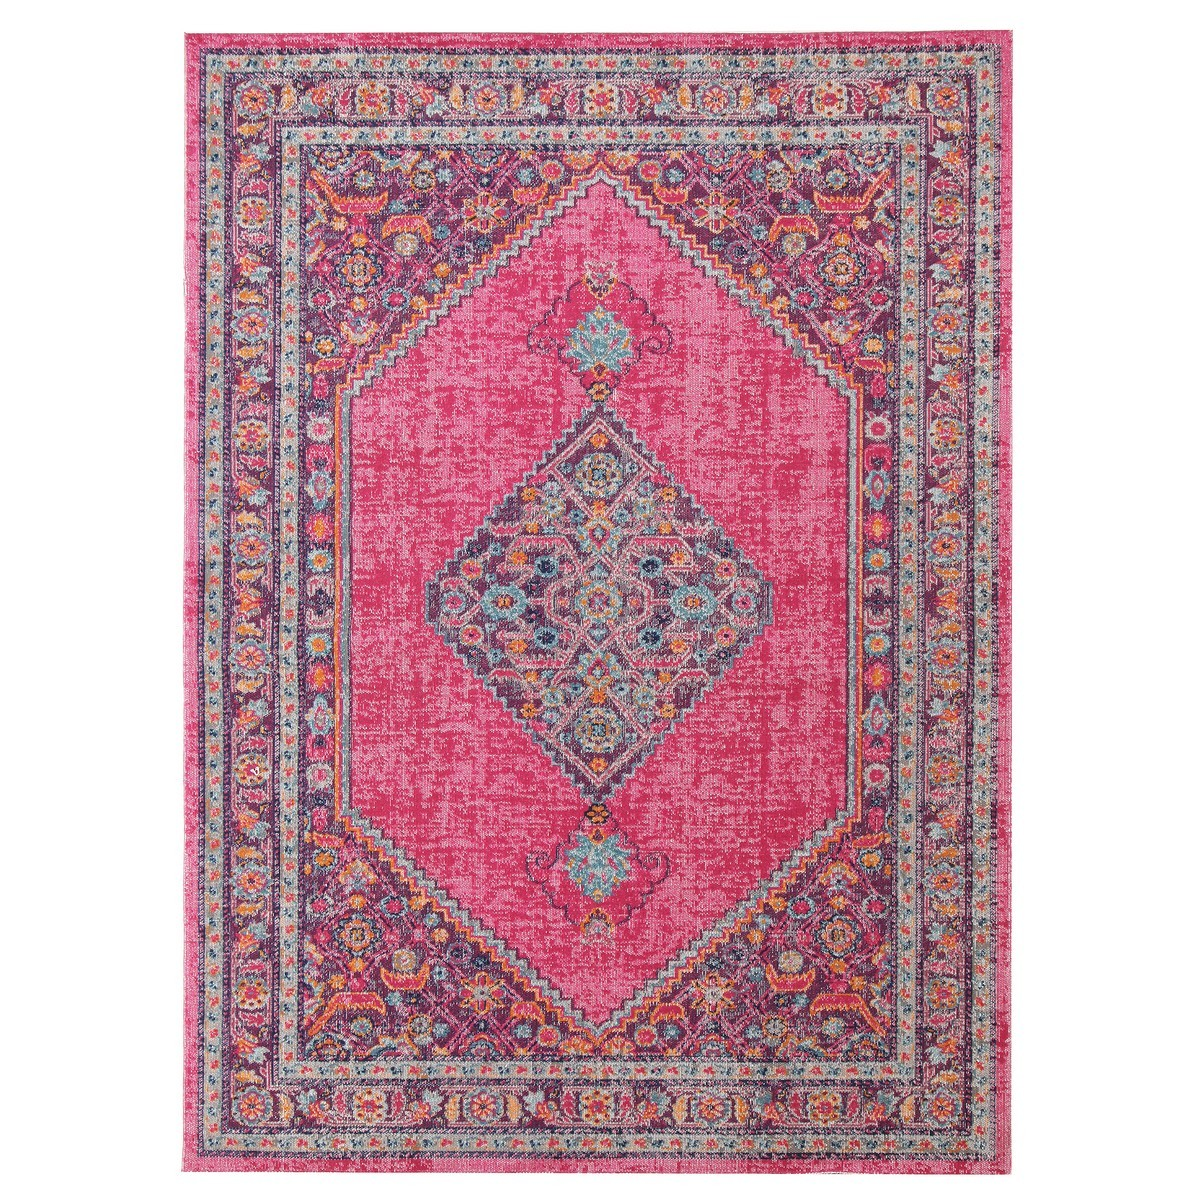 Eternal Whisper Diamond Turkish Made Oriental Rug, 200x290cm, Pink